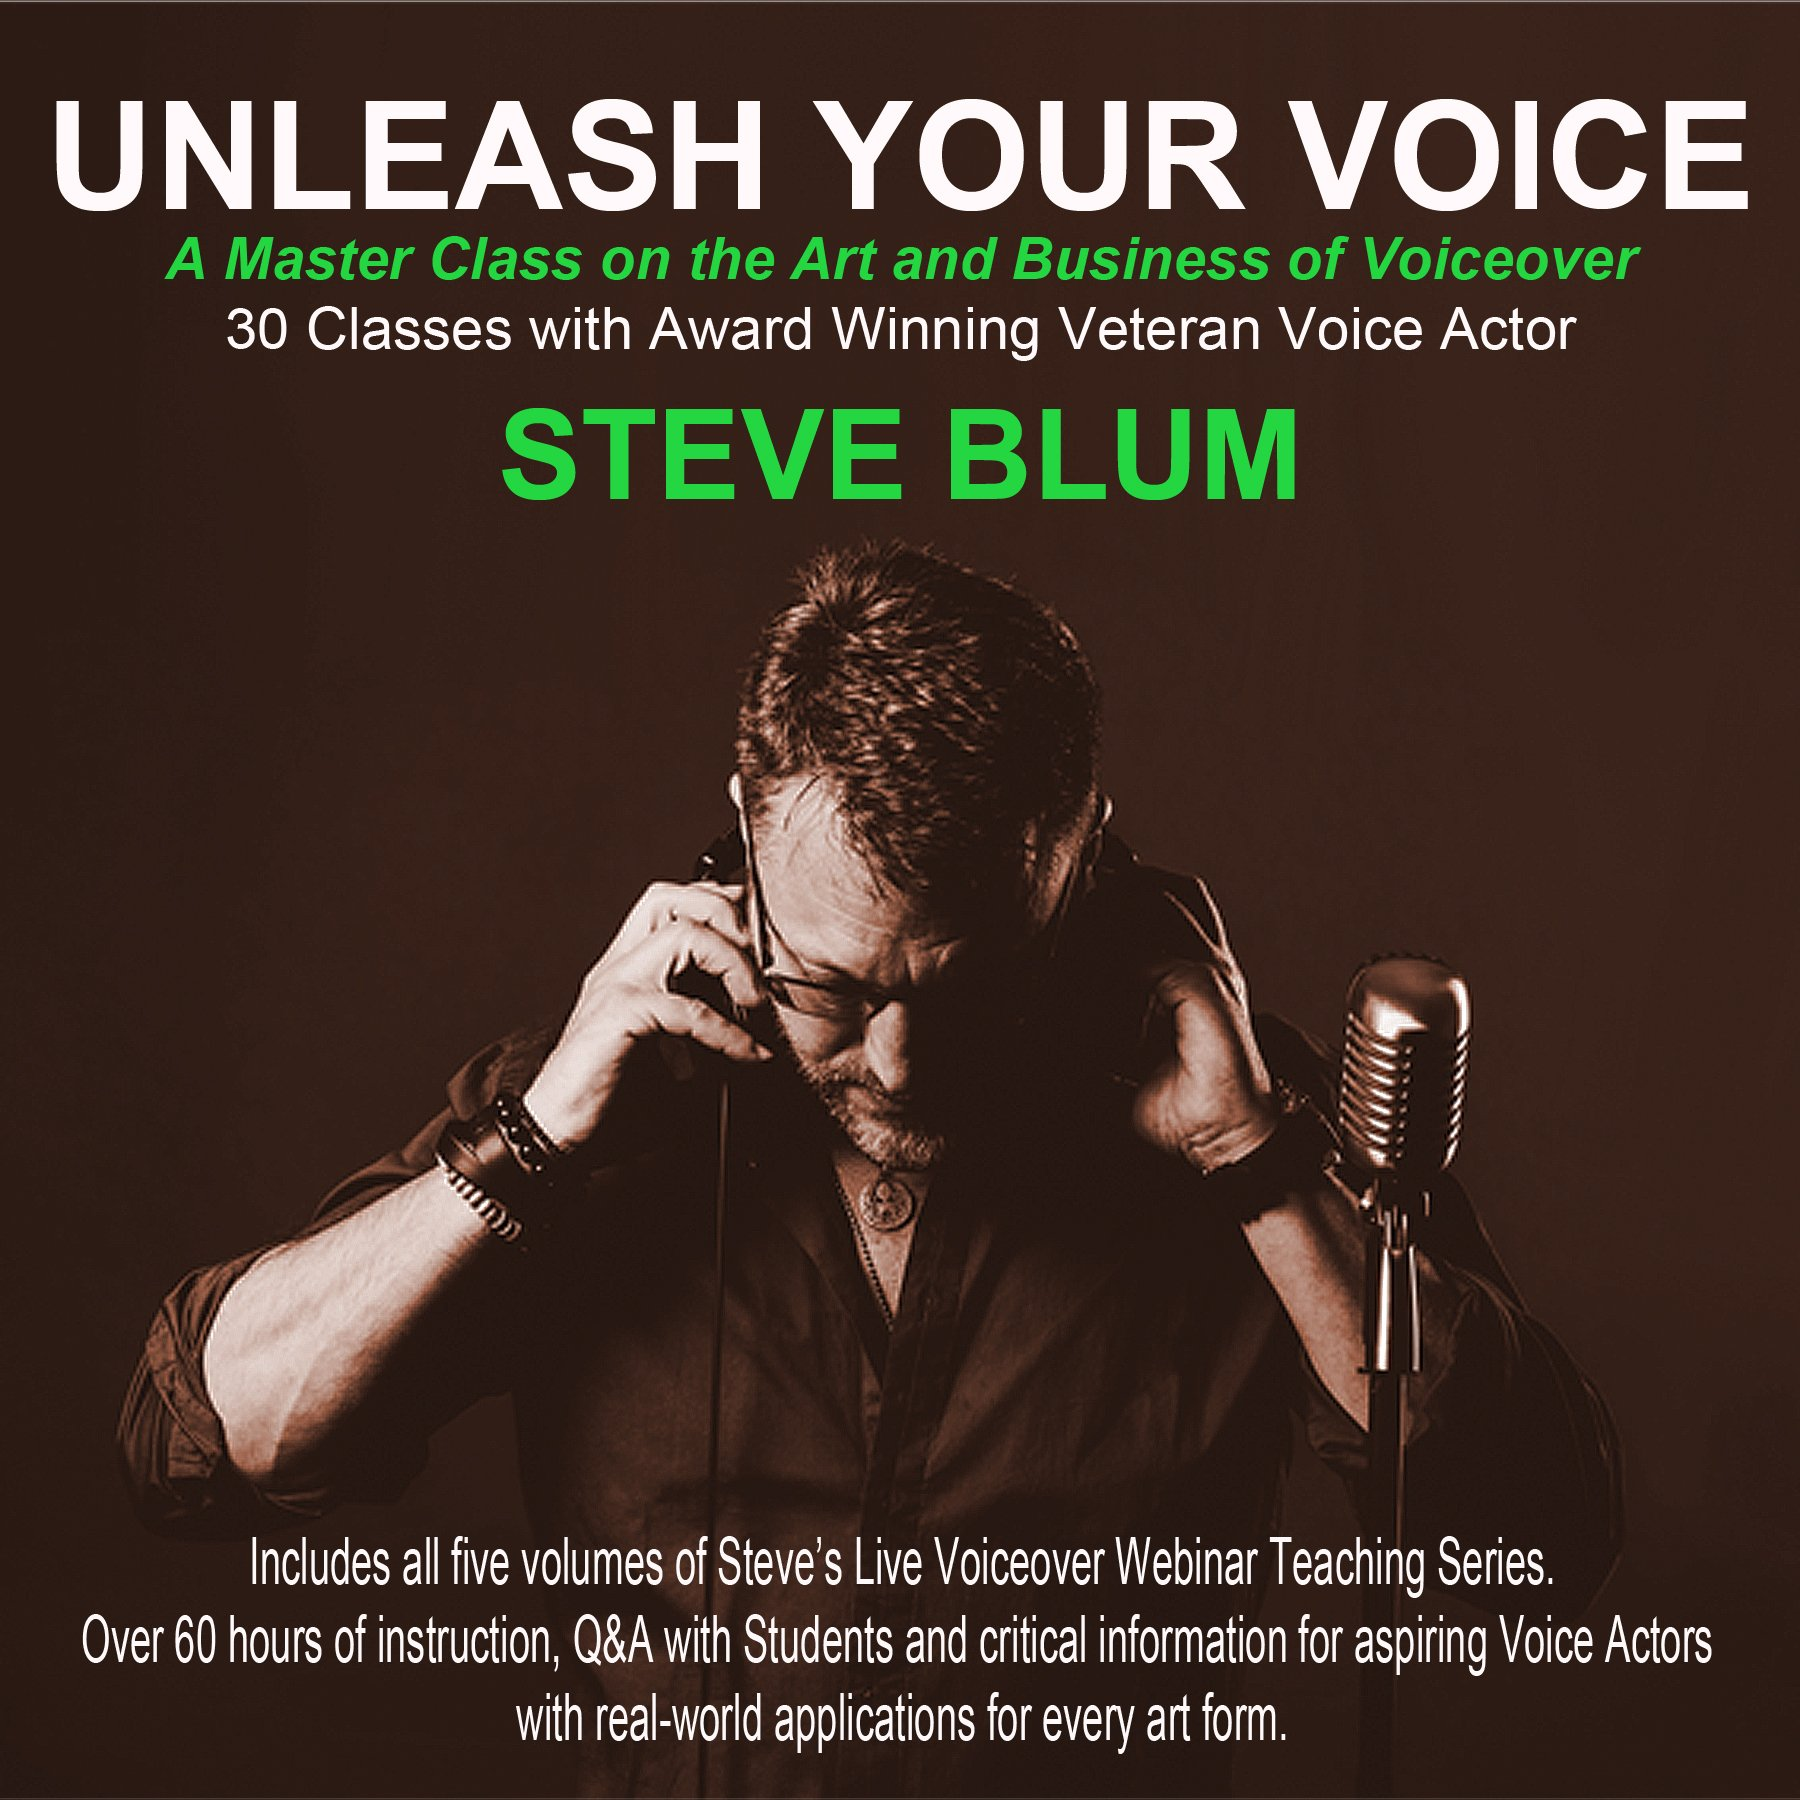 Steve Blum's Voiceover Teaching Series Downloads